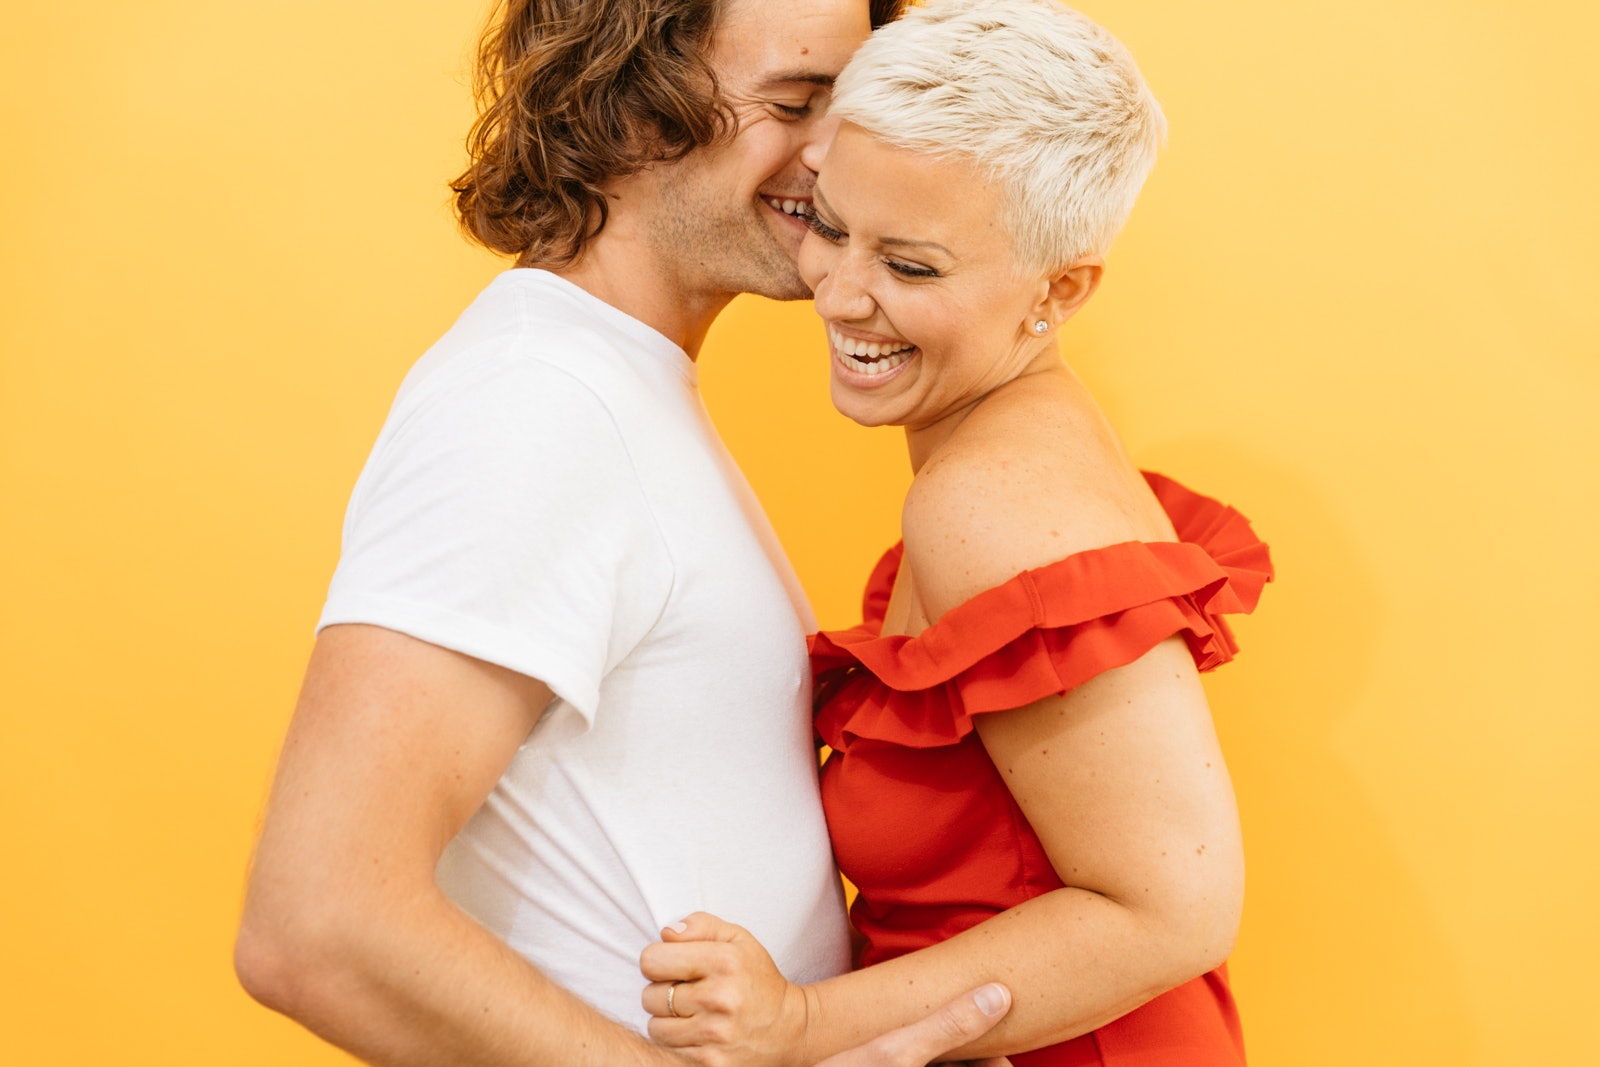 What To Do If You Tell Your Partner You Love Them, But They